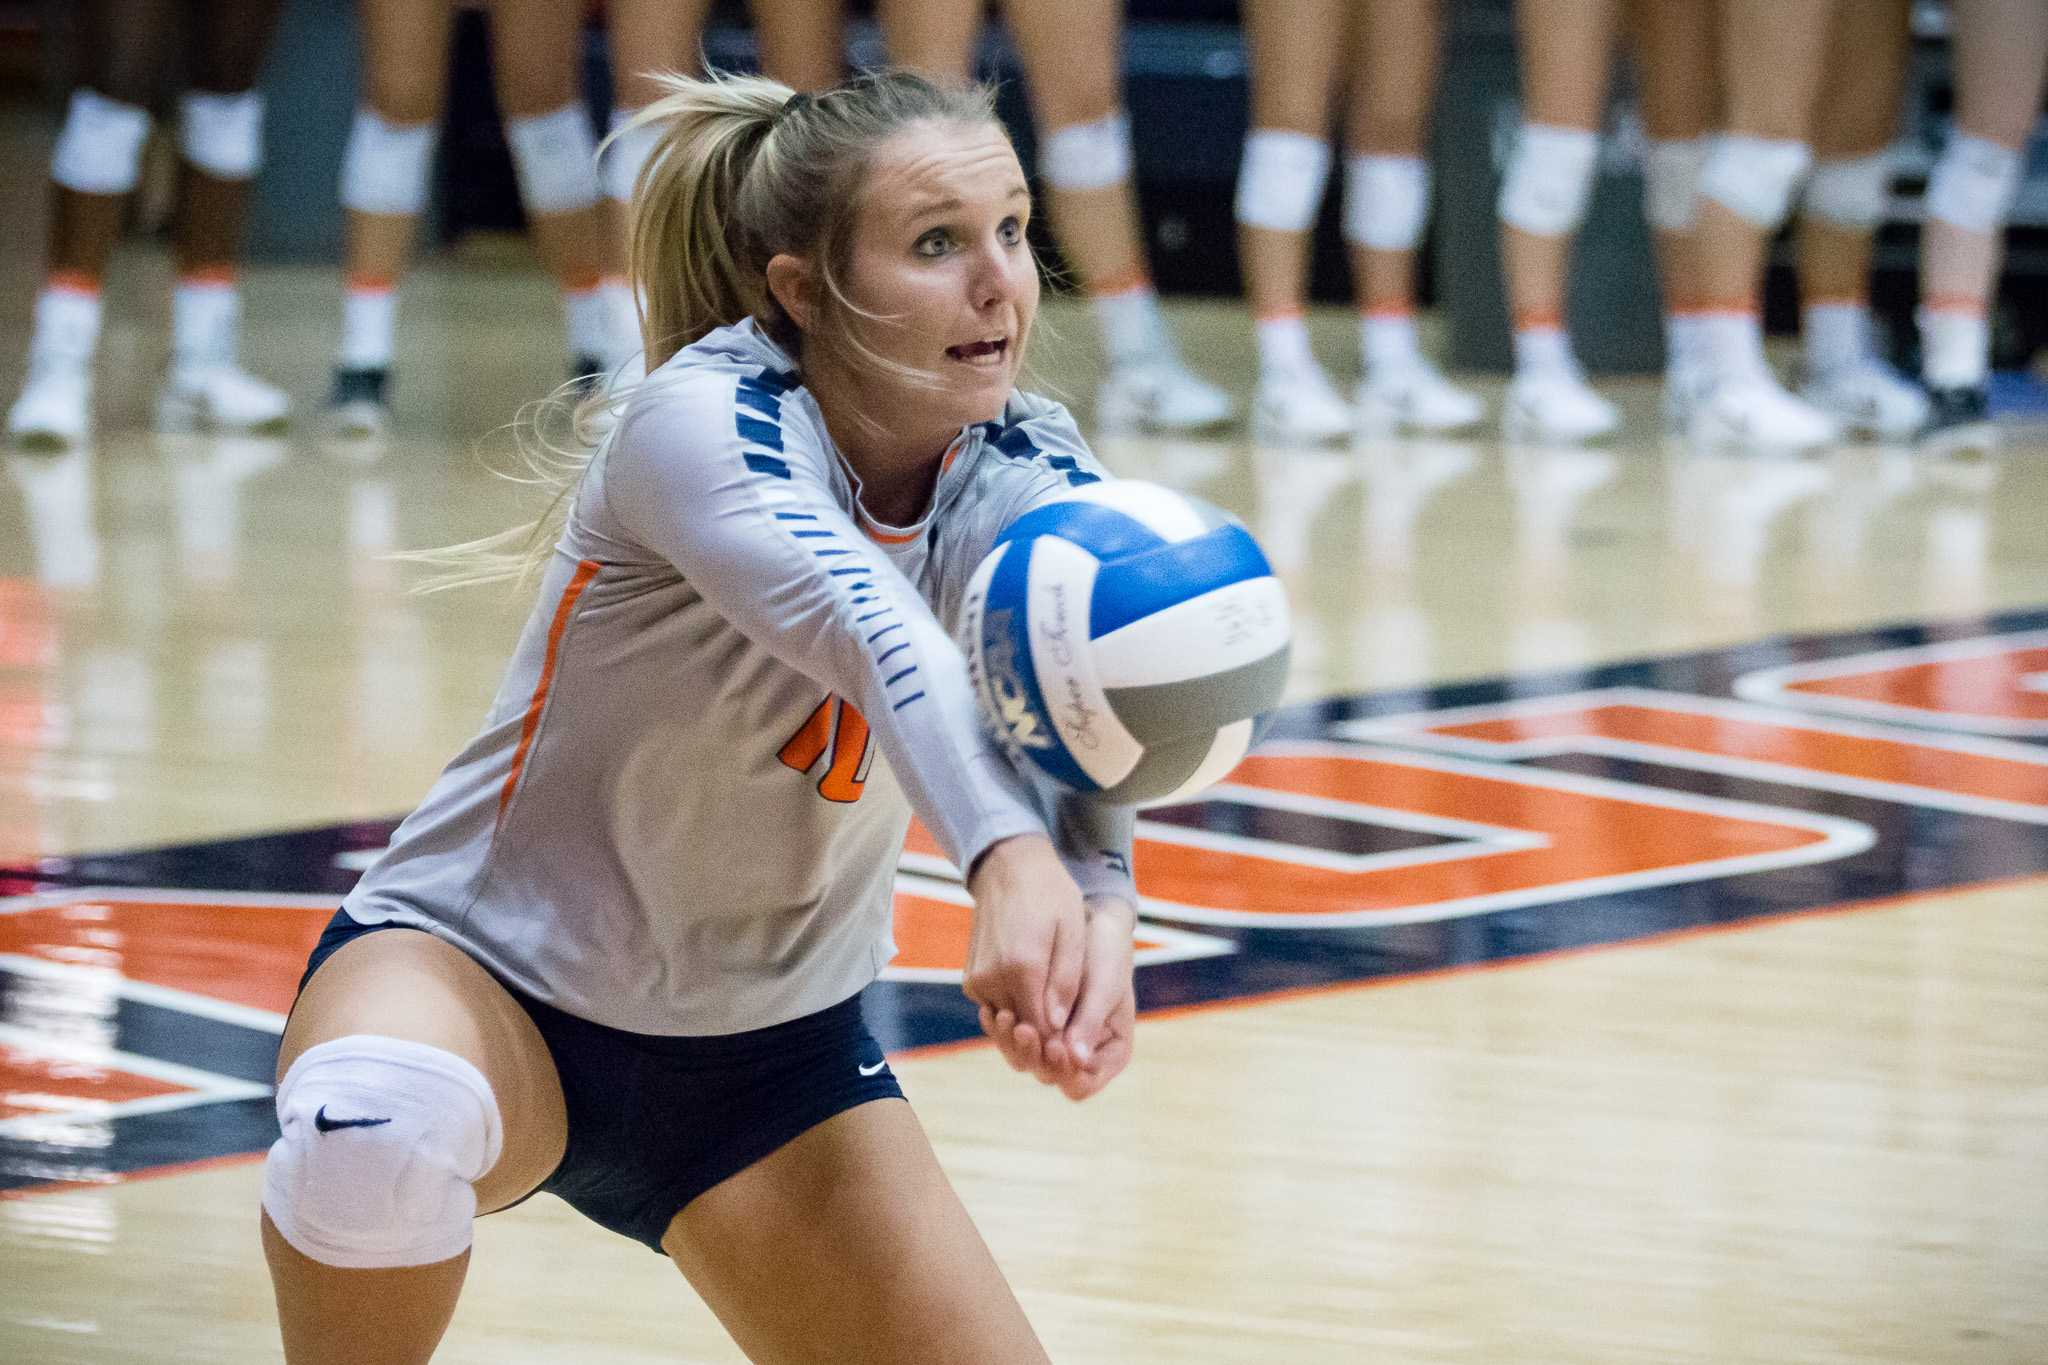 Illinois' Danielle Davis passes the ball during the match against Northwestern at Huff Hall on Saturday, October 15. The Illini won 3-0.